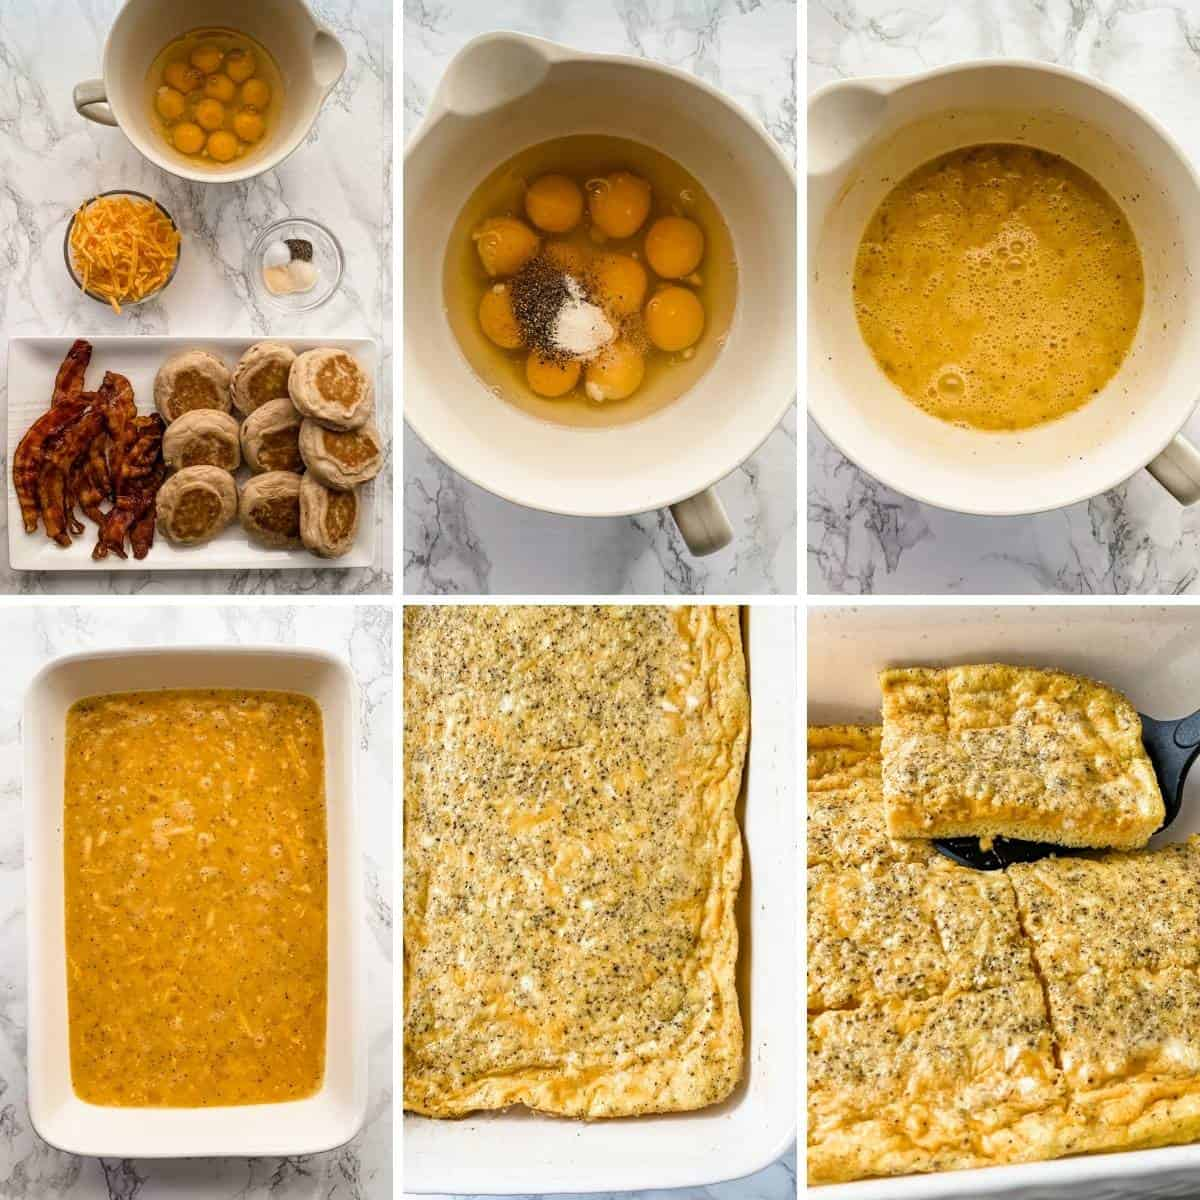 Collage showing the steps for making frozen breakfast sandwiches